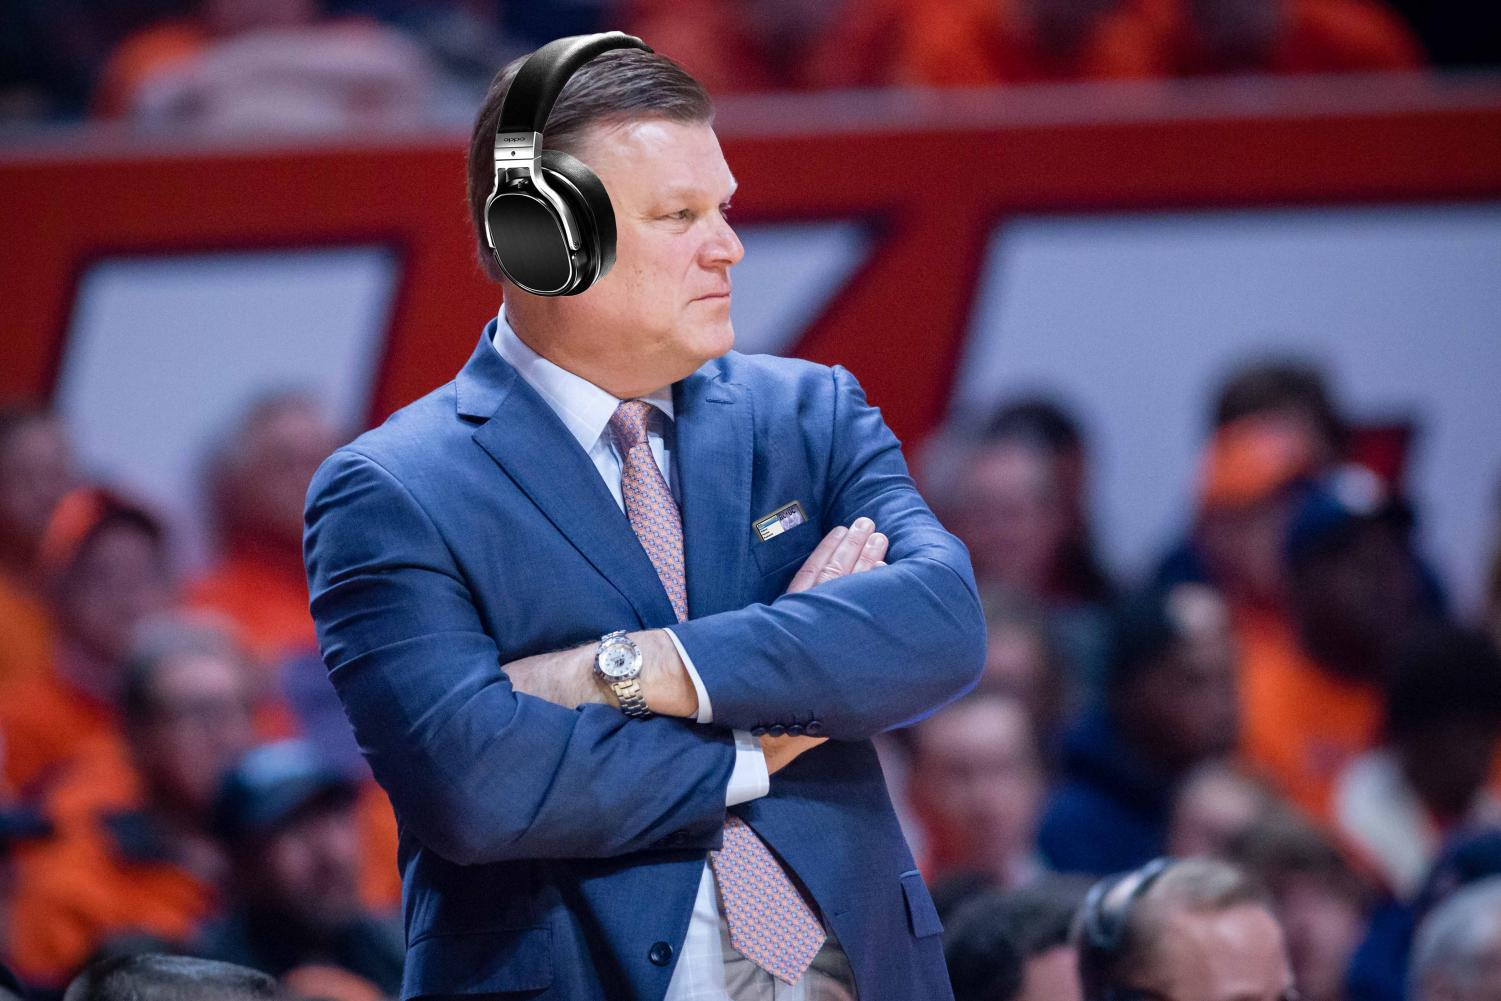 Illinois head coach Brad Underwood watches his team from the sideline during the game against Grand Canyon at State Farm Center on Dec. 30, 2017. The Illini won 62-58.